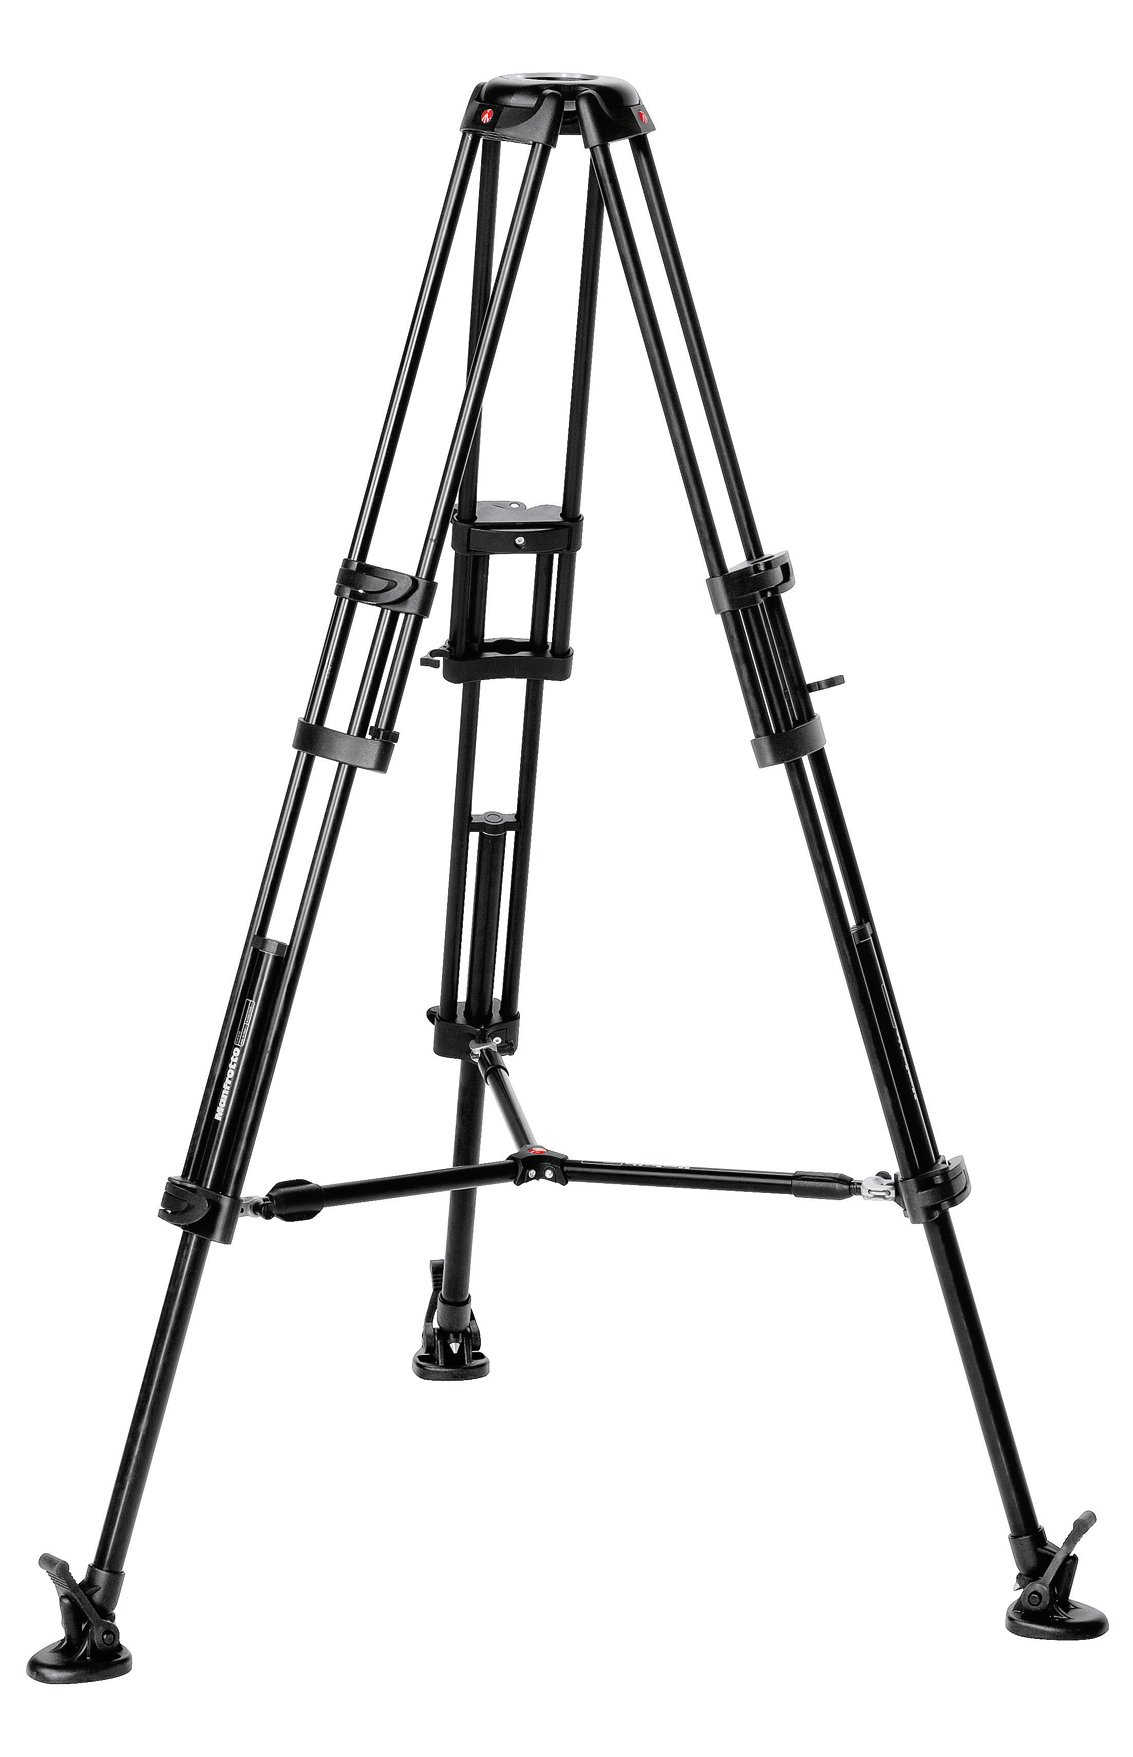 Manfrotto 546B Twin Leg Video Tripod with Mid Level Spreader